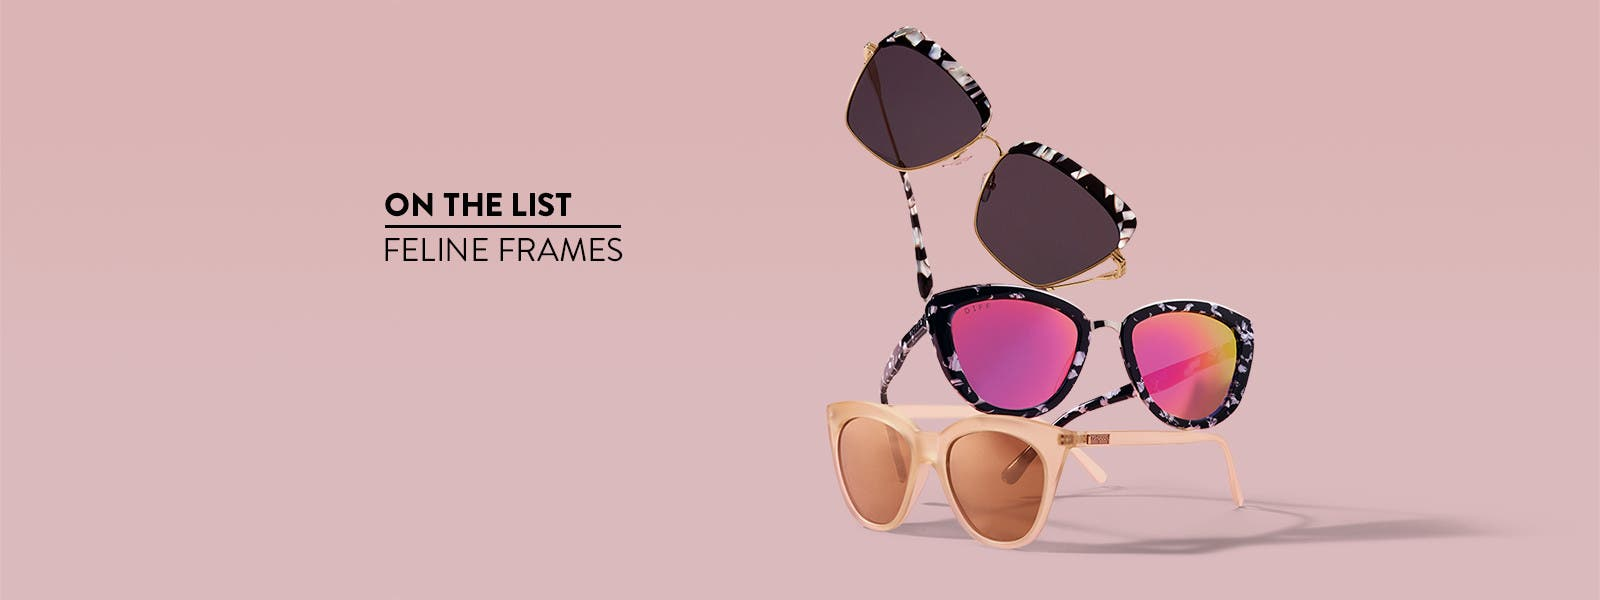 Feline frames: cat-eye sunglasses.